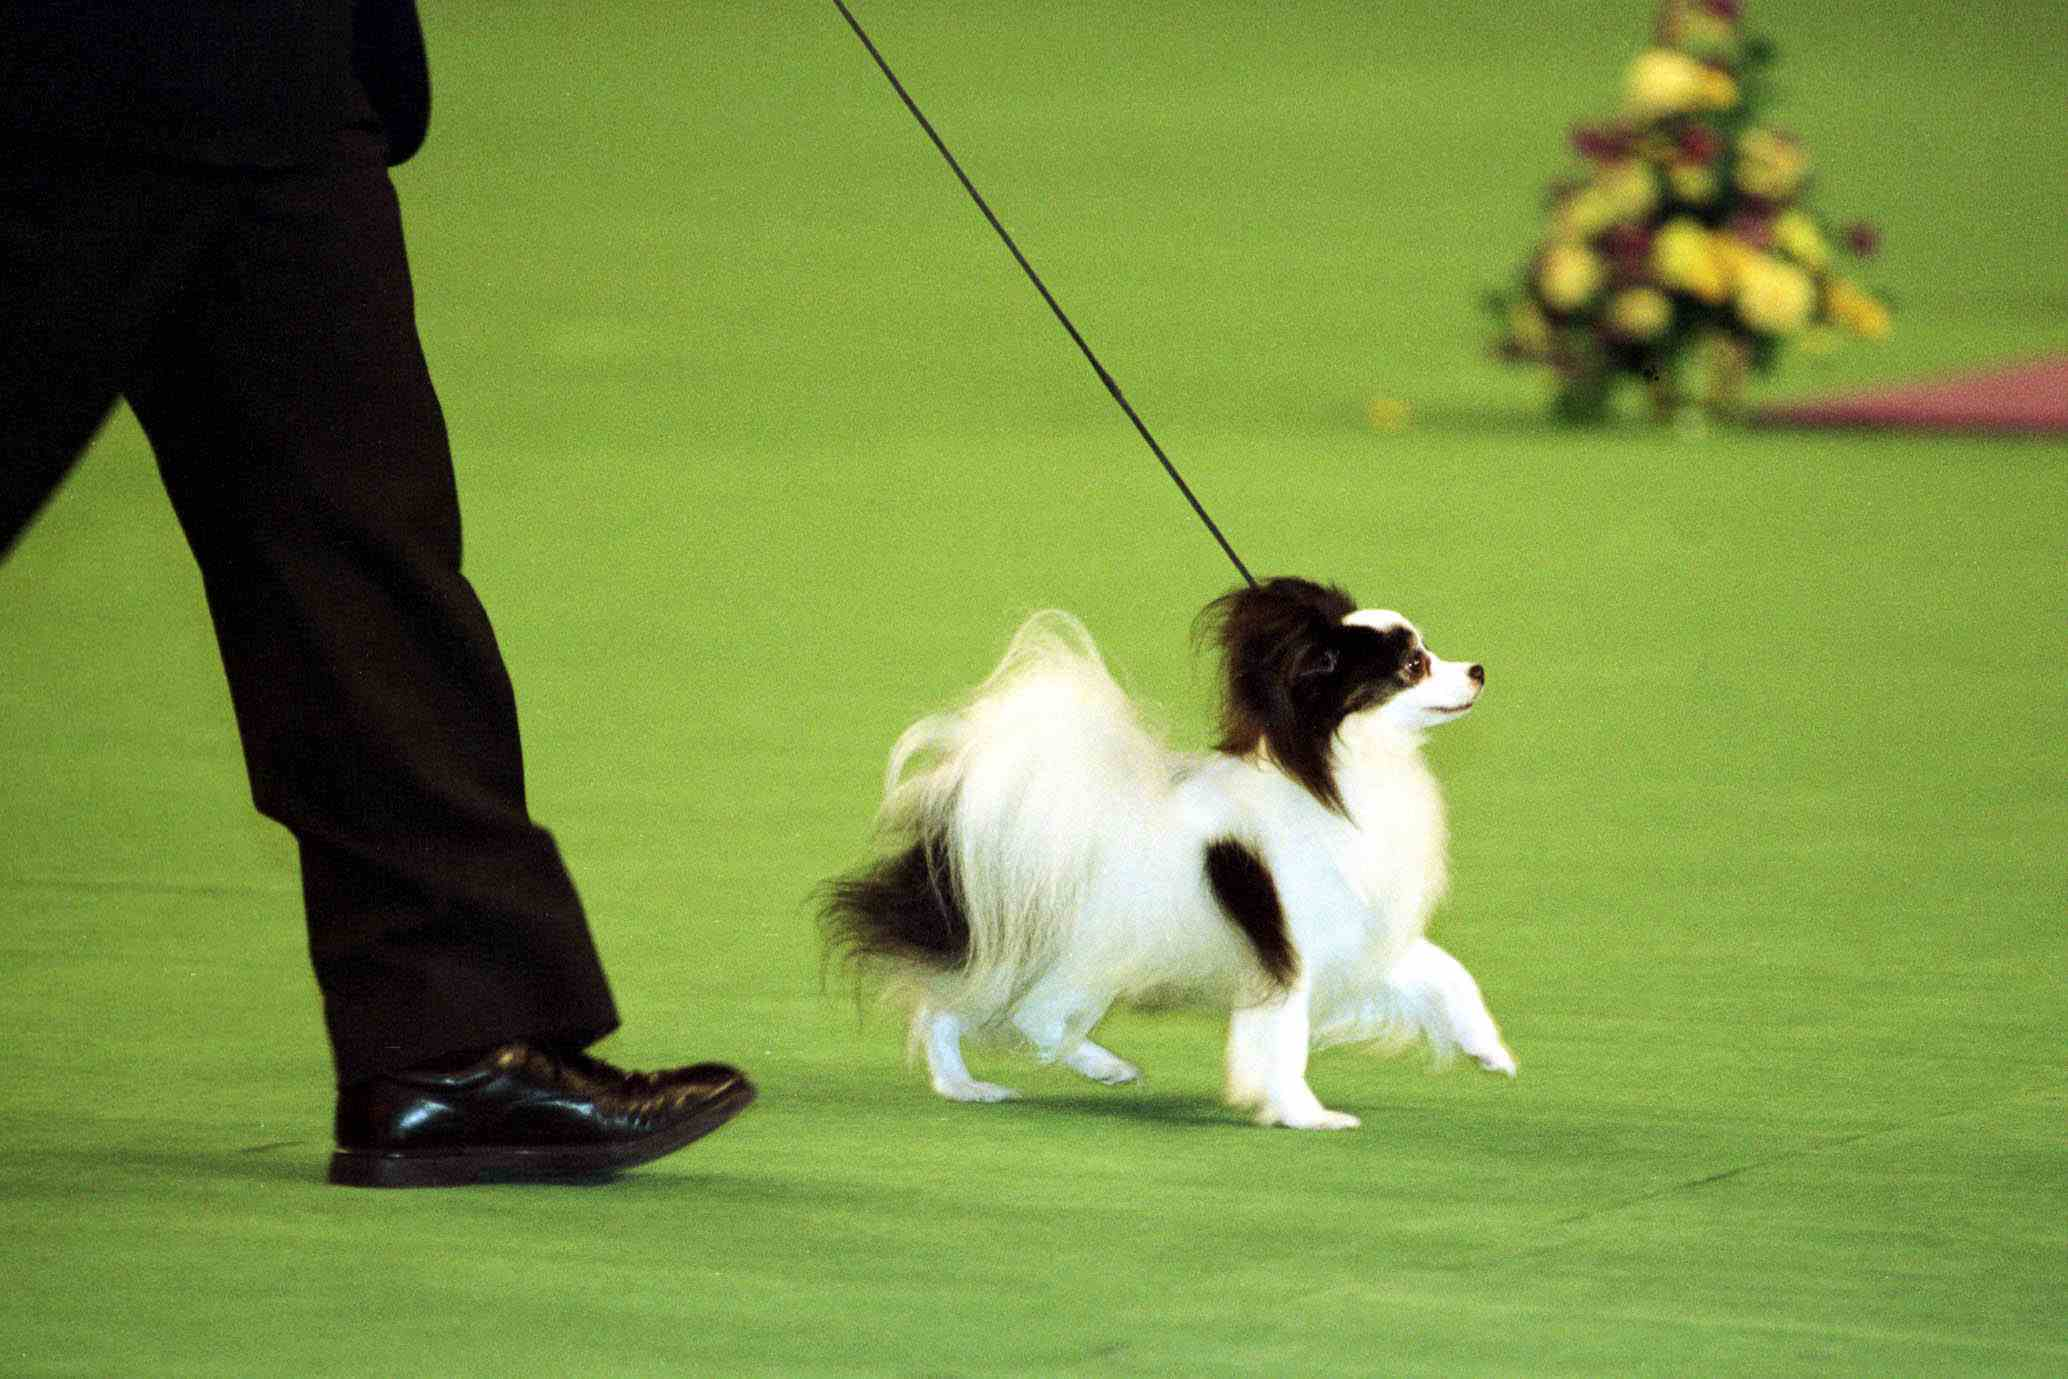 1999 Westminister Kennel club dog Show winner of Best-In-Show Ch. Loteki Supernatural Being or Kirby as he is known struts his stuff in the center ring.